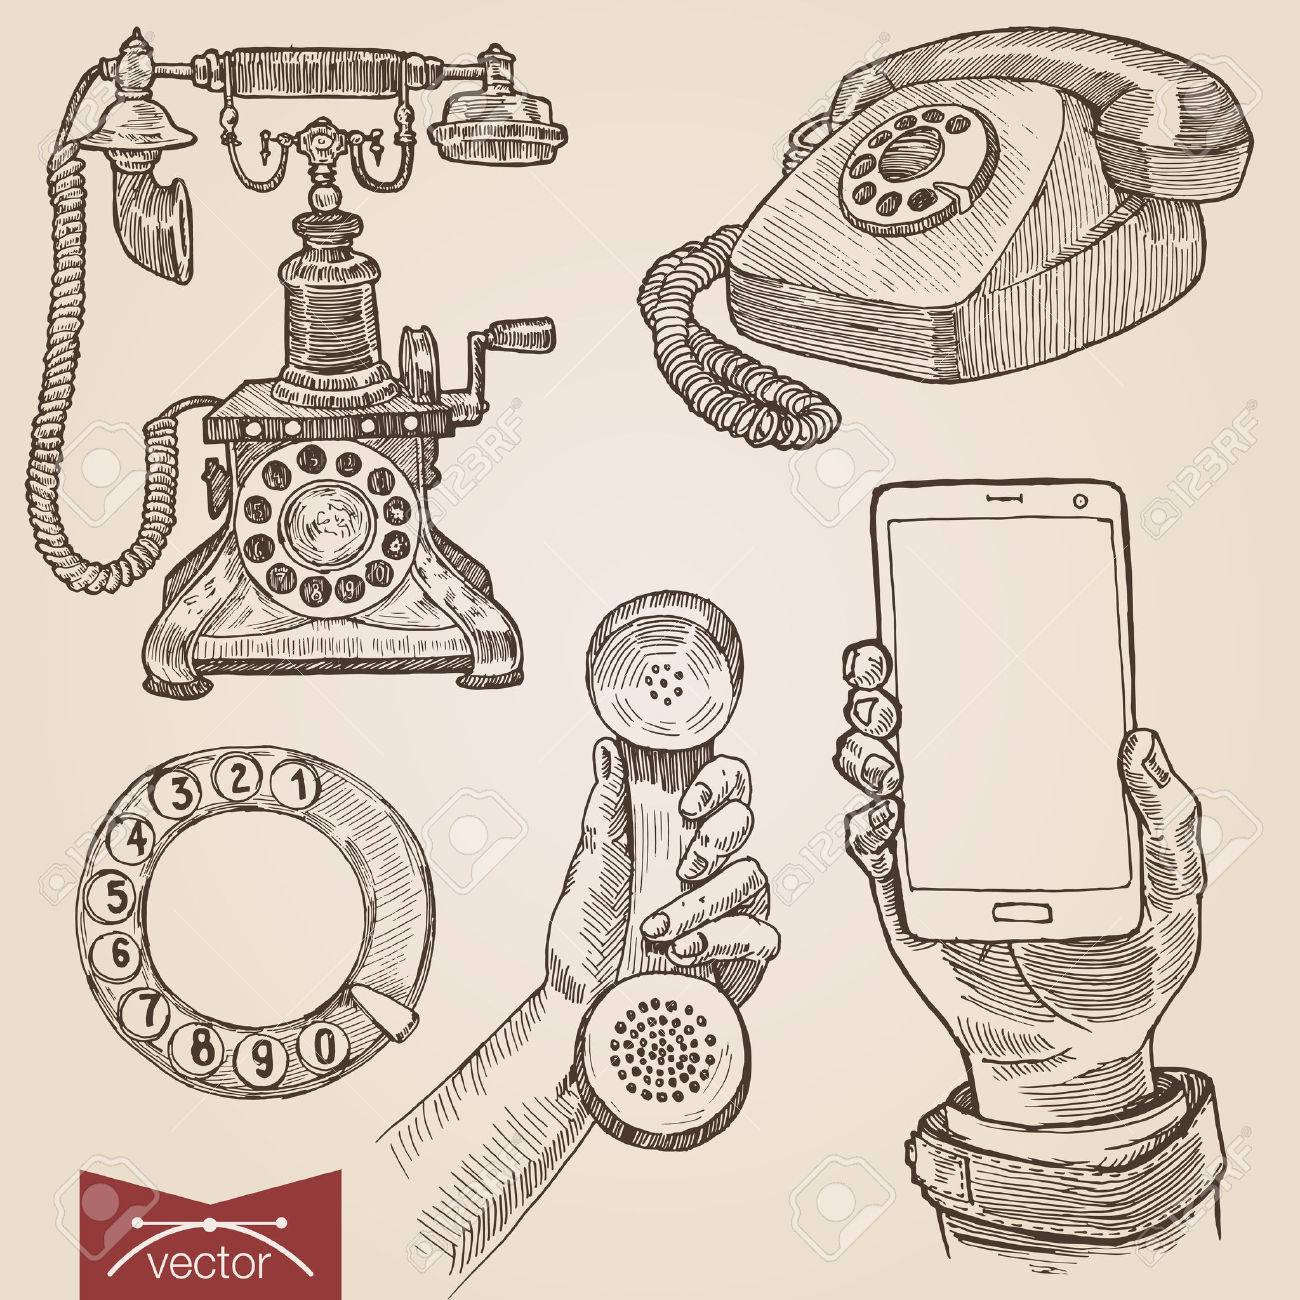 Handdrawn engraving style pen pencil crosshatch hatching paper painting retro vintage vector lineart illustration set of old fashioned disc phones smartphone. Engrave silhouette conceptual collection - 45041443